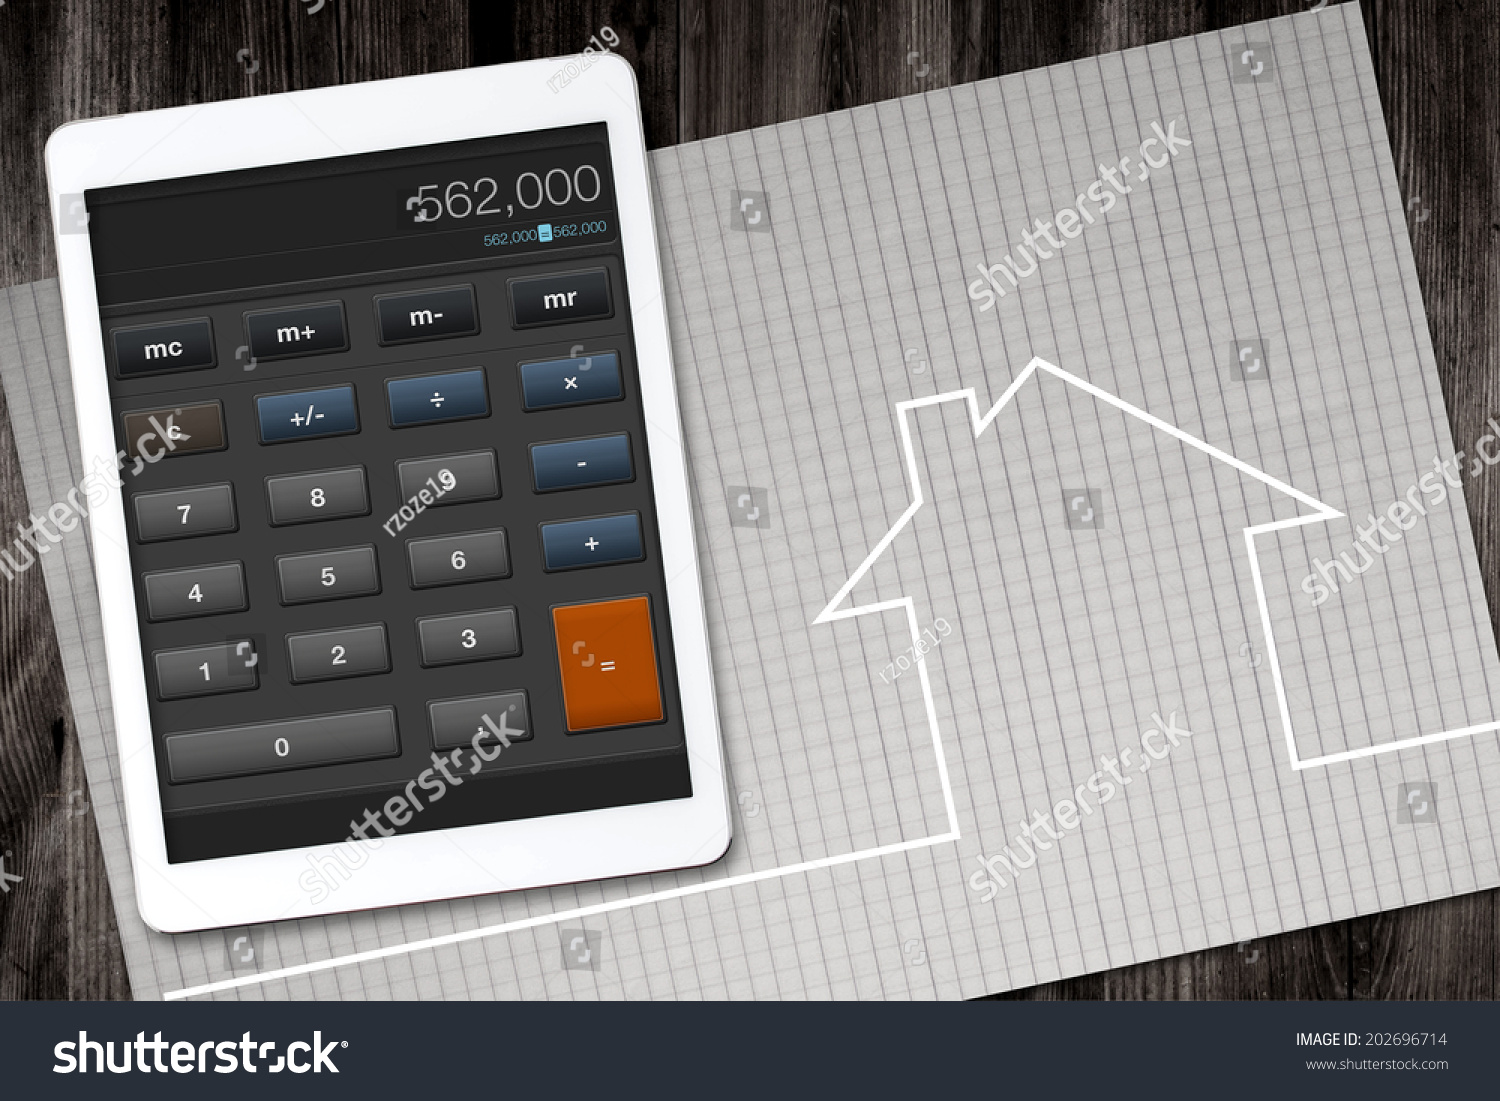 Home construction cost calculator stock photo 202696714 for Build my home calculator